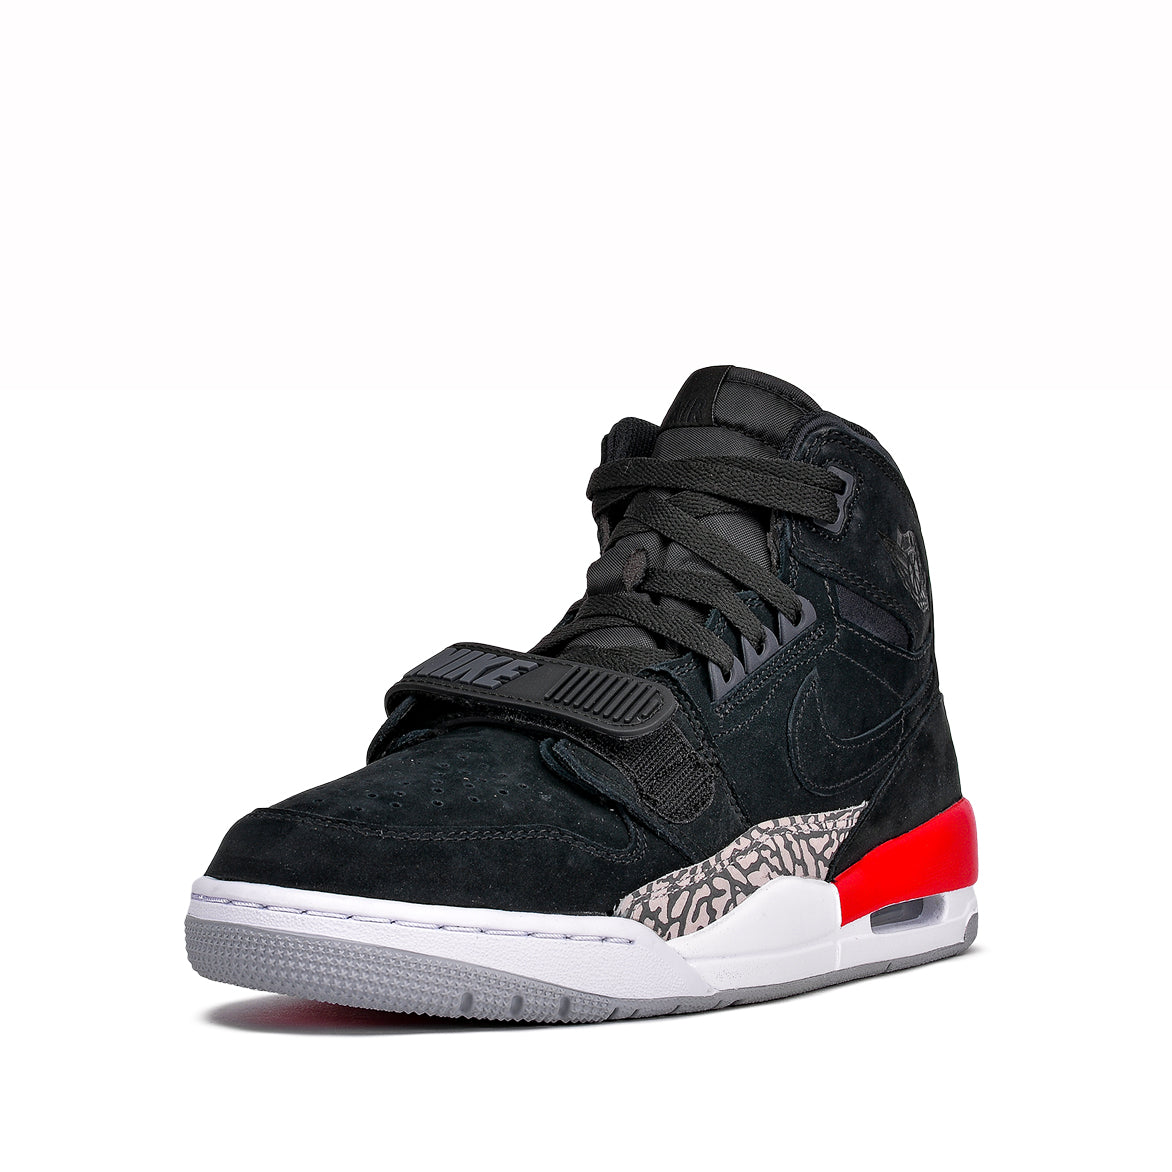 JORDAN LEGACY 312 - BLACK / FIRE RED